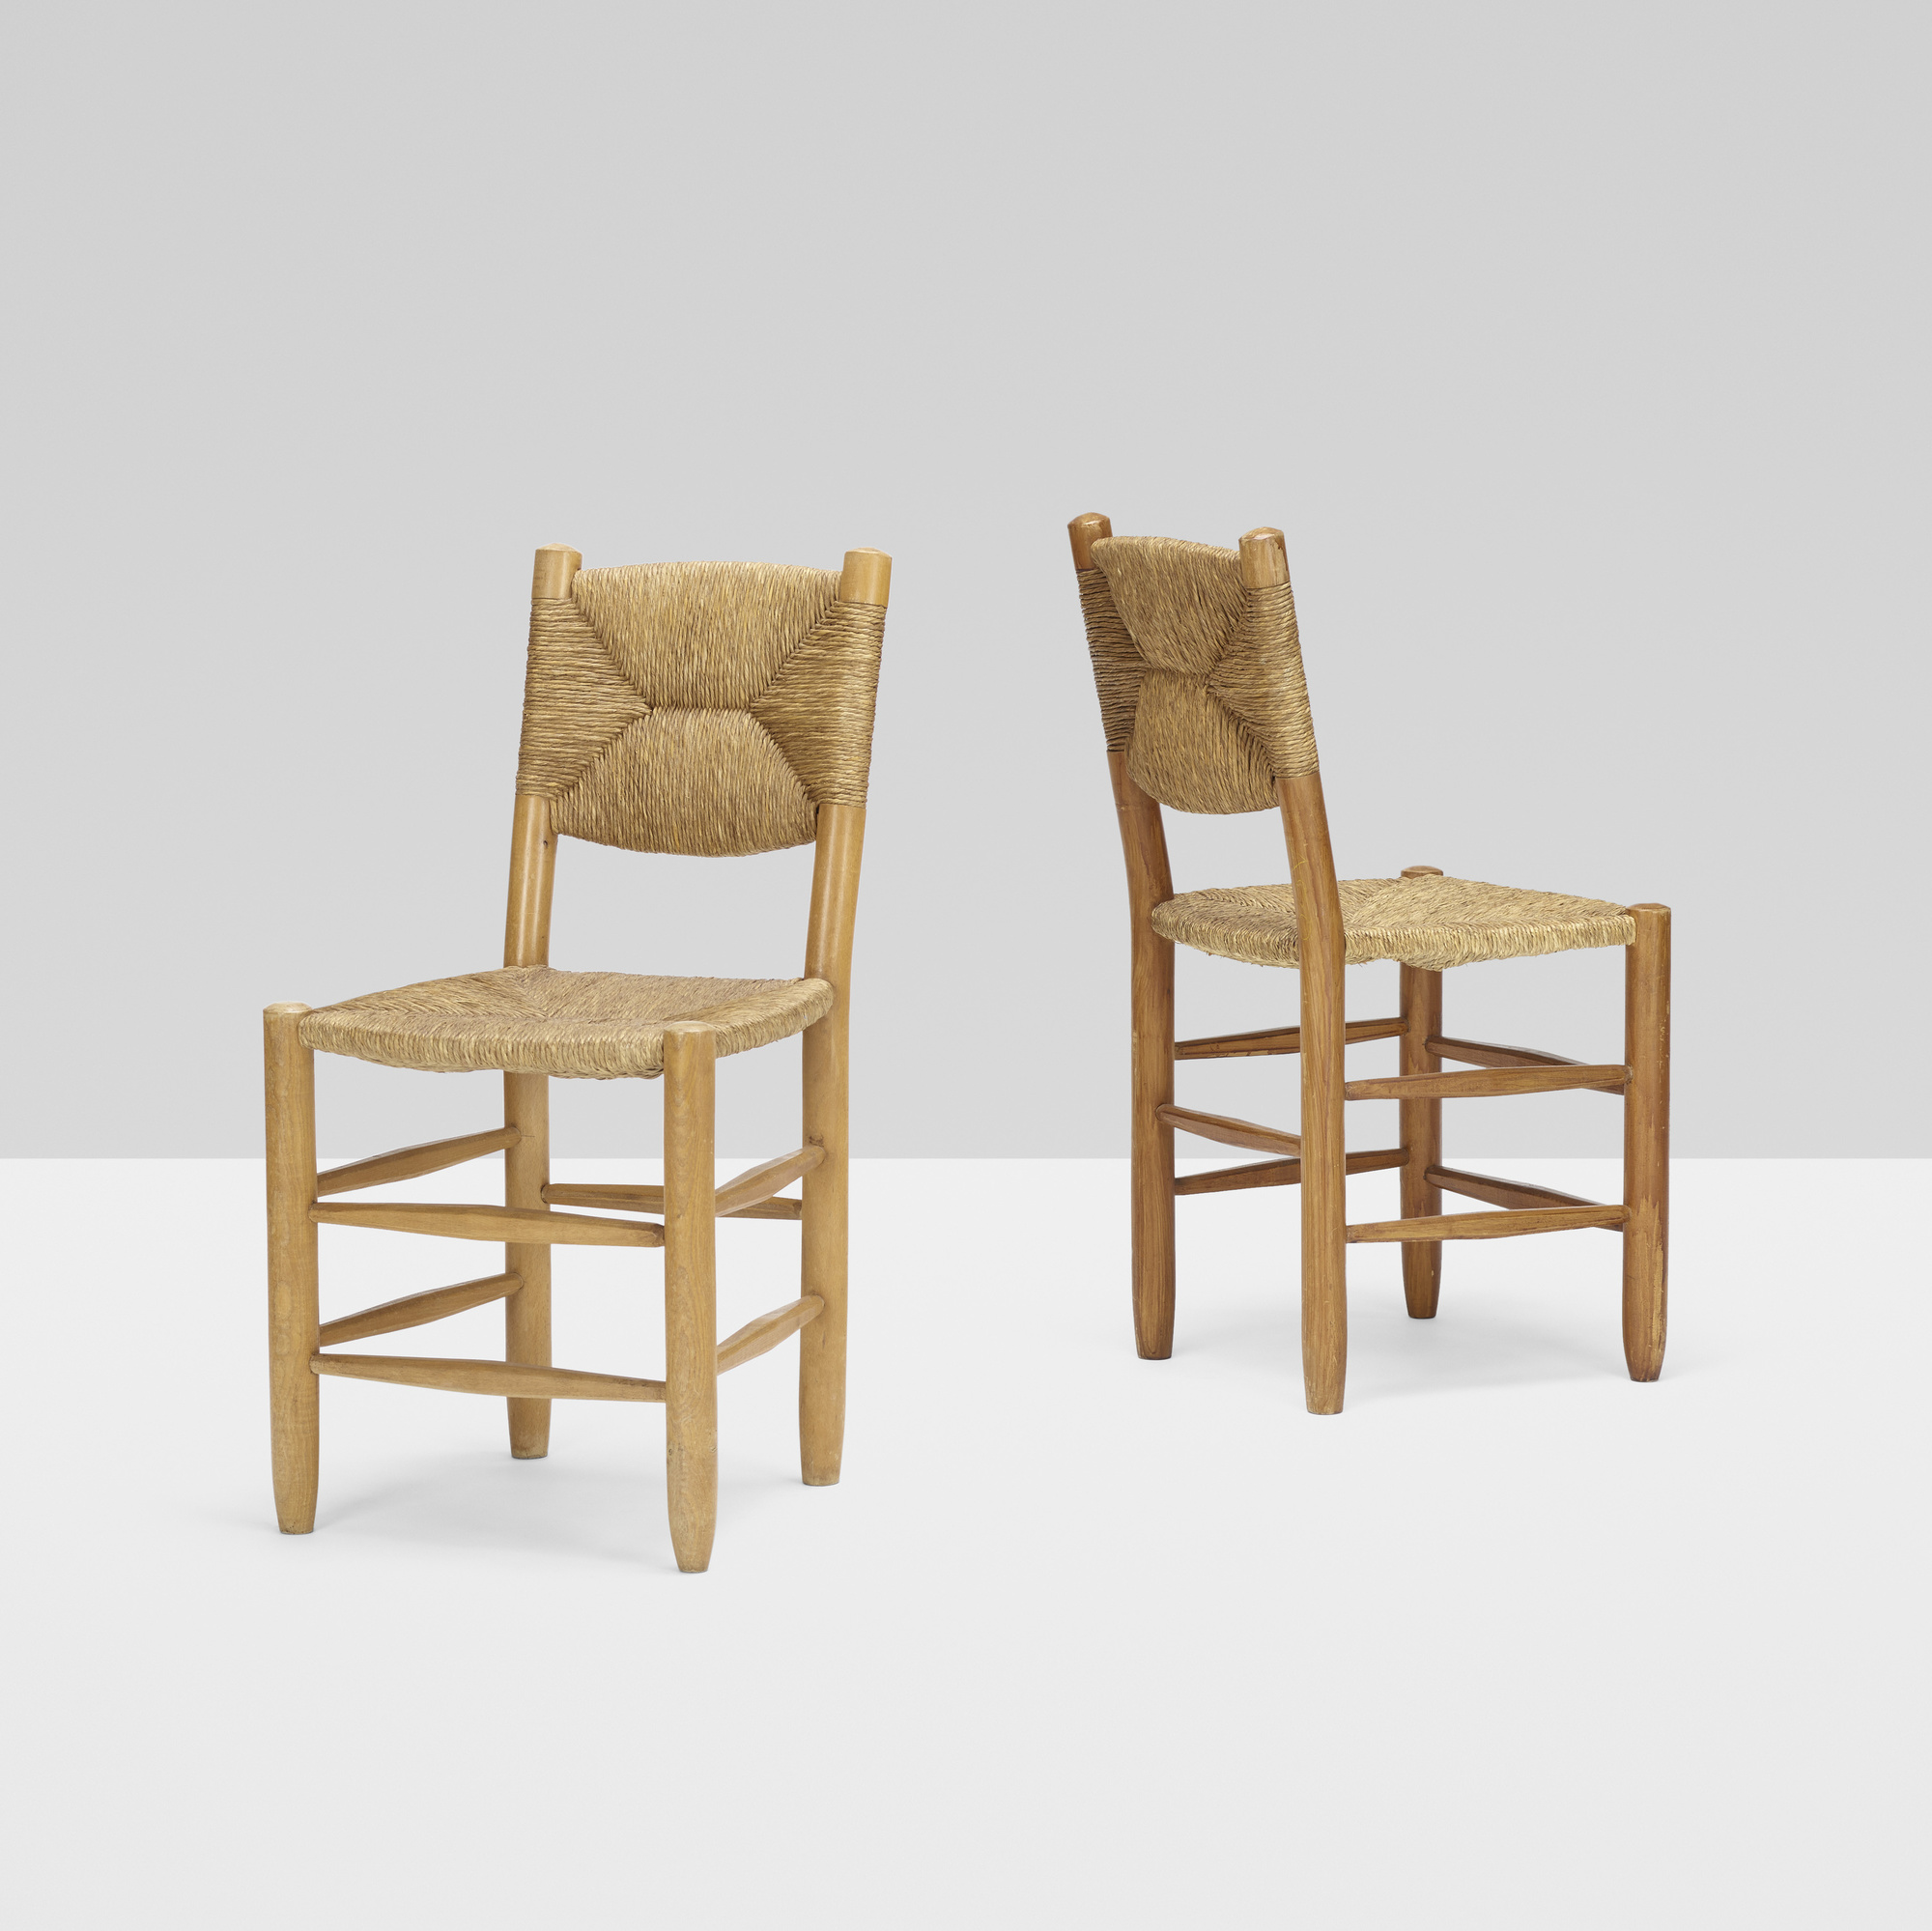 123: Charlotte Perriand / dining chairs, pair (1 of 4)